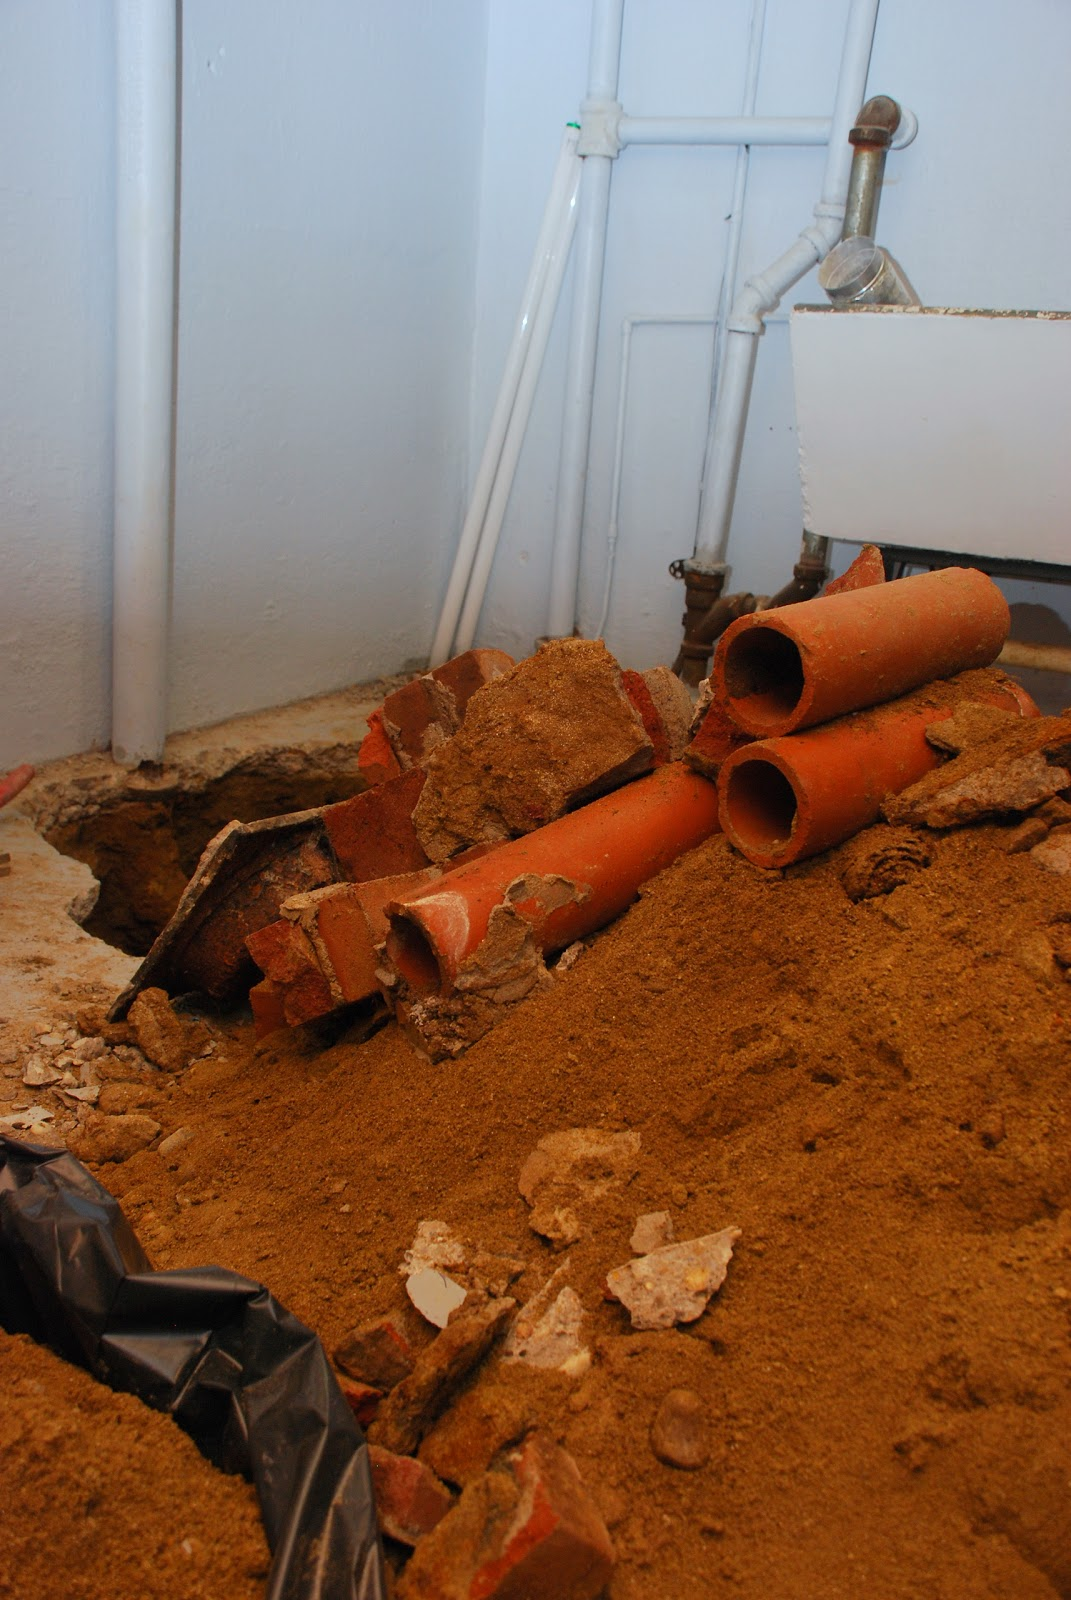 Our little beehive becoming handy through home renovation cooking - The Guys Were So Efficient With The Demo That They Were Able To Break The Concrete Floor And Dig Down To All Our Plumbing Including The Floor Drain